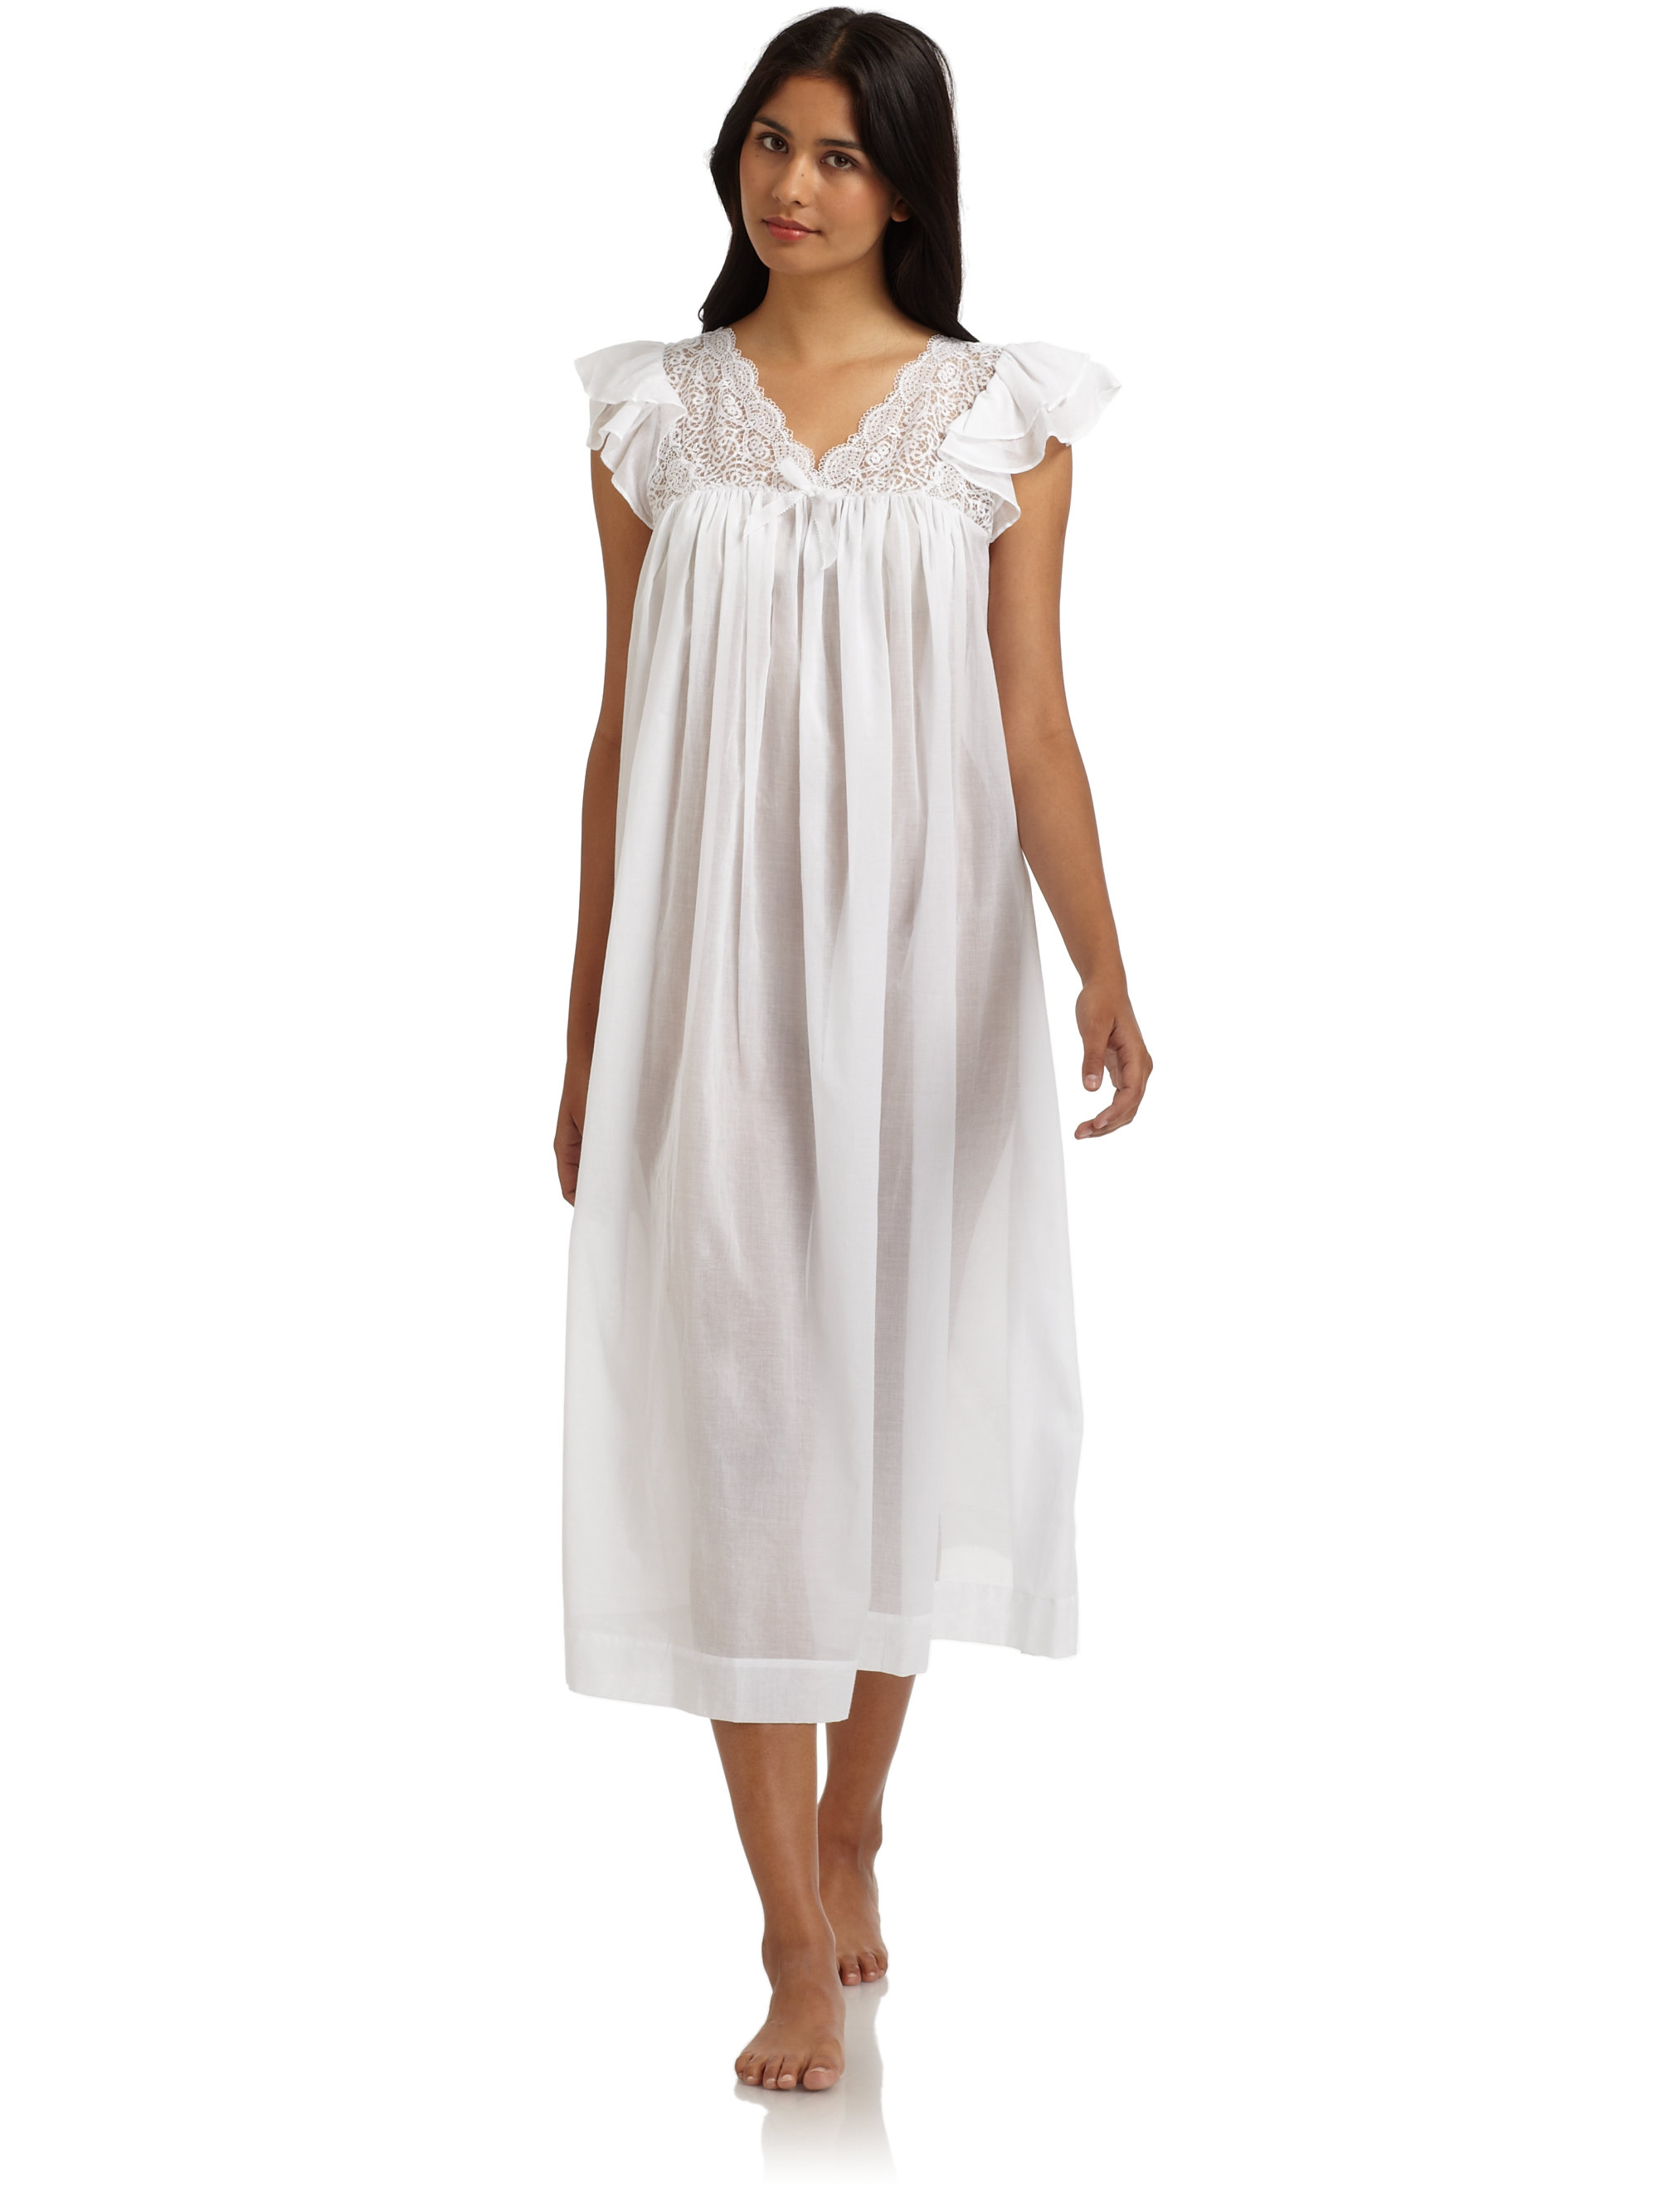 Lyst - Oscar De La Renta Delicate Whisper Cotton Lawn Lace Nightgown ...